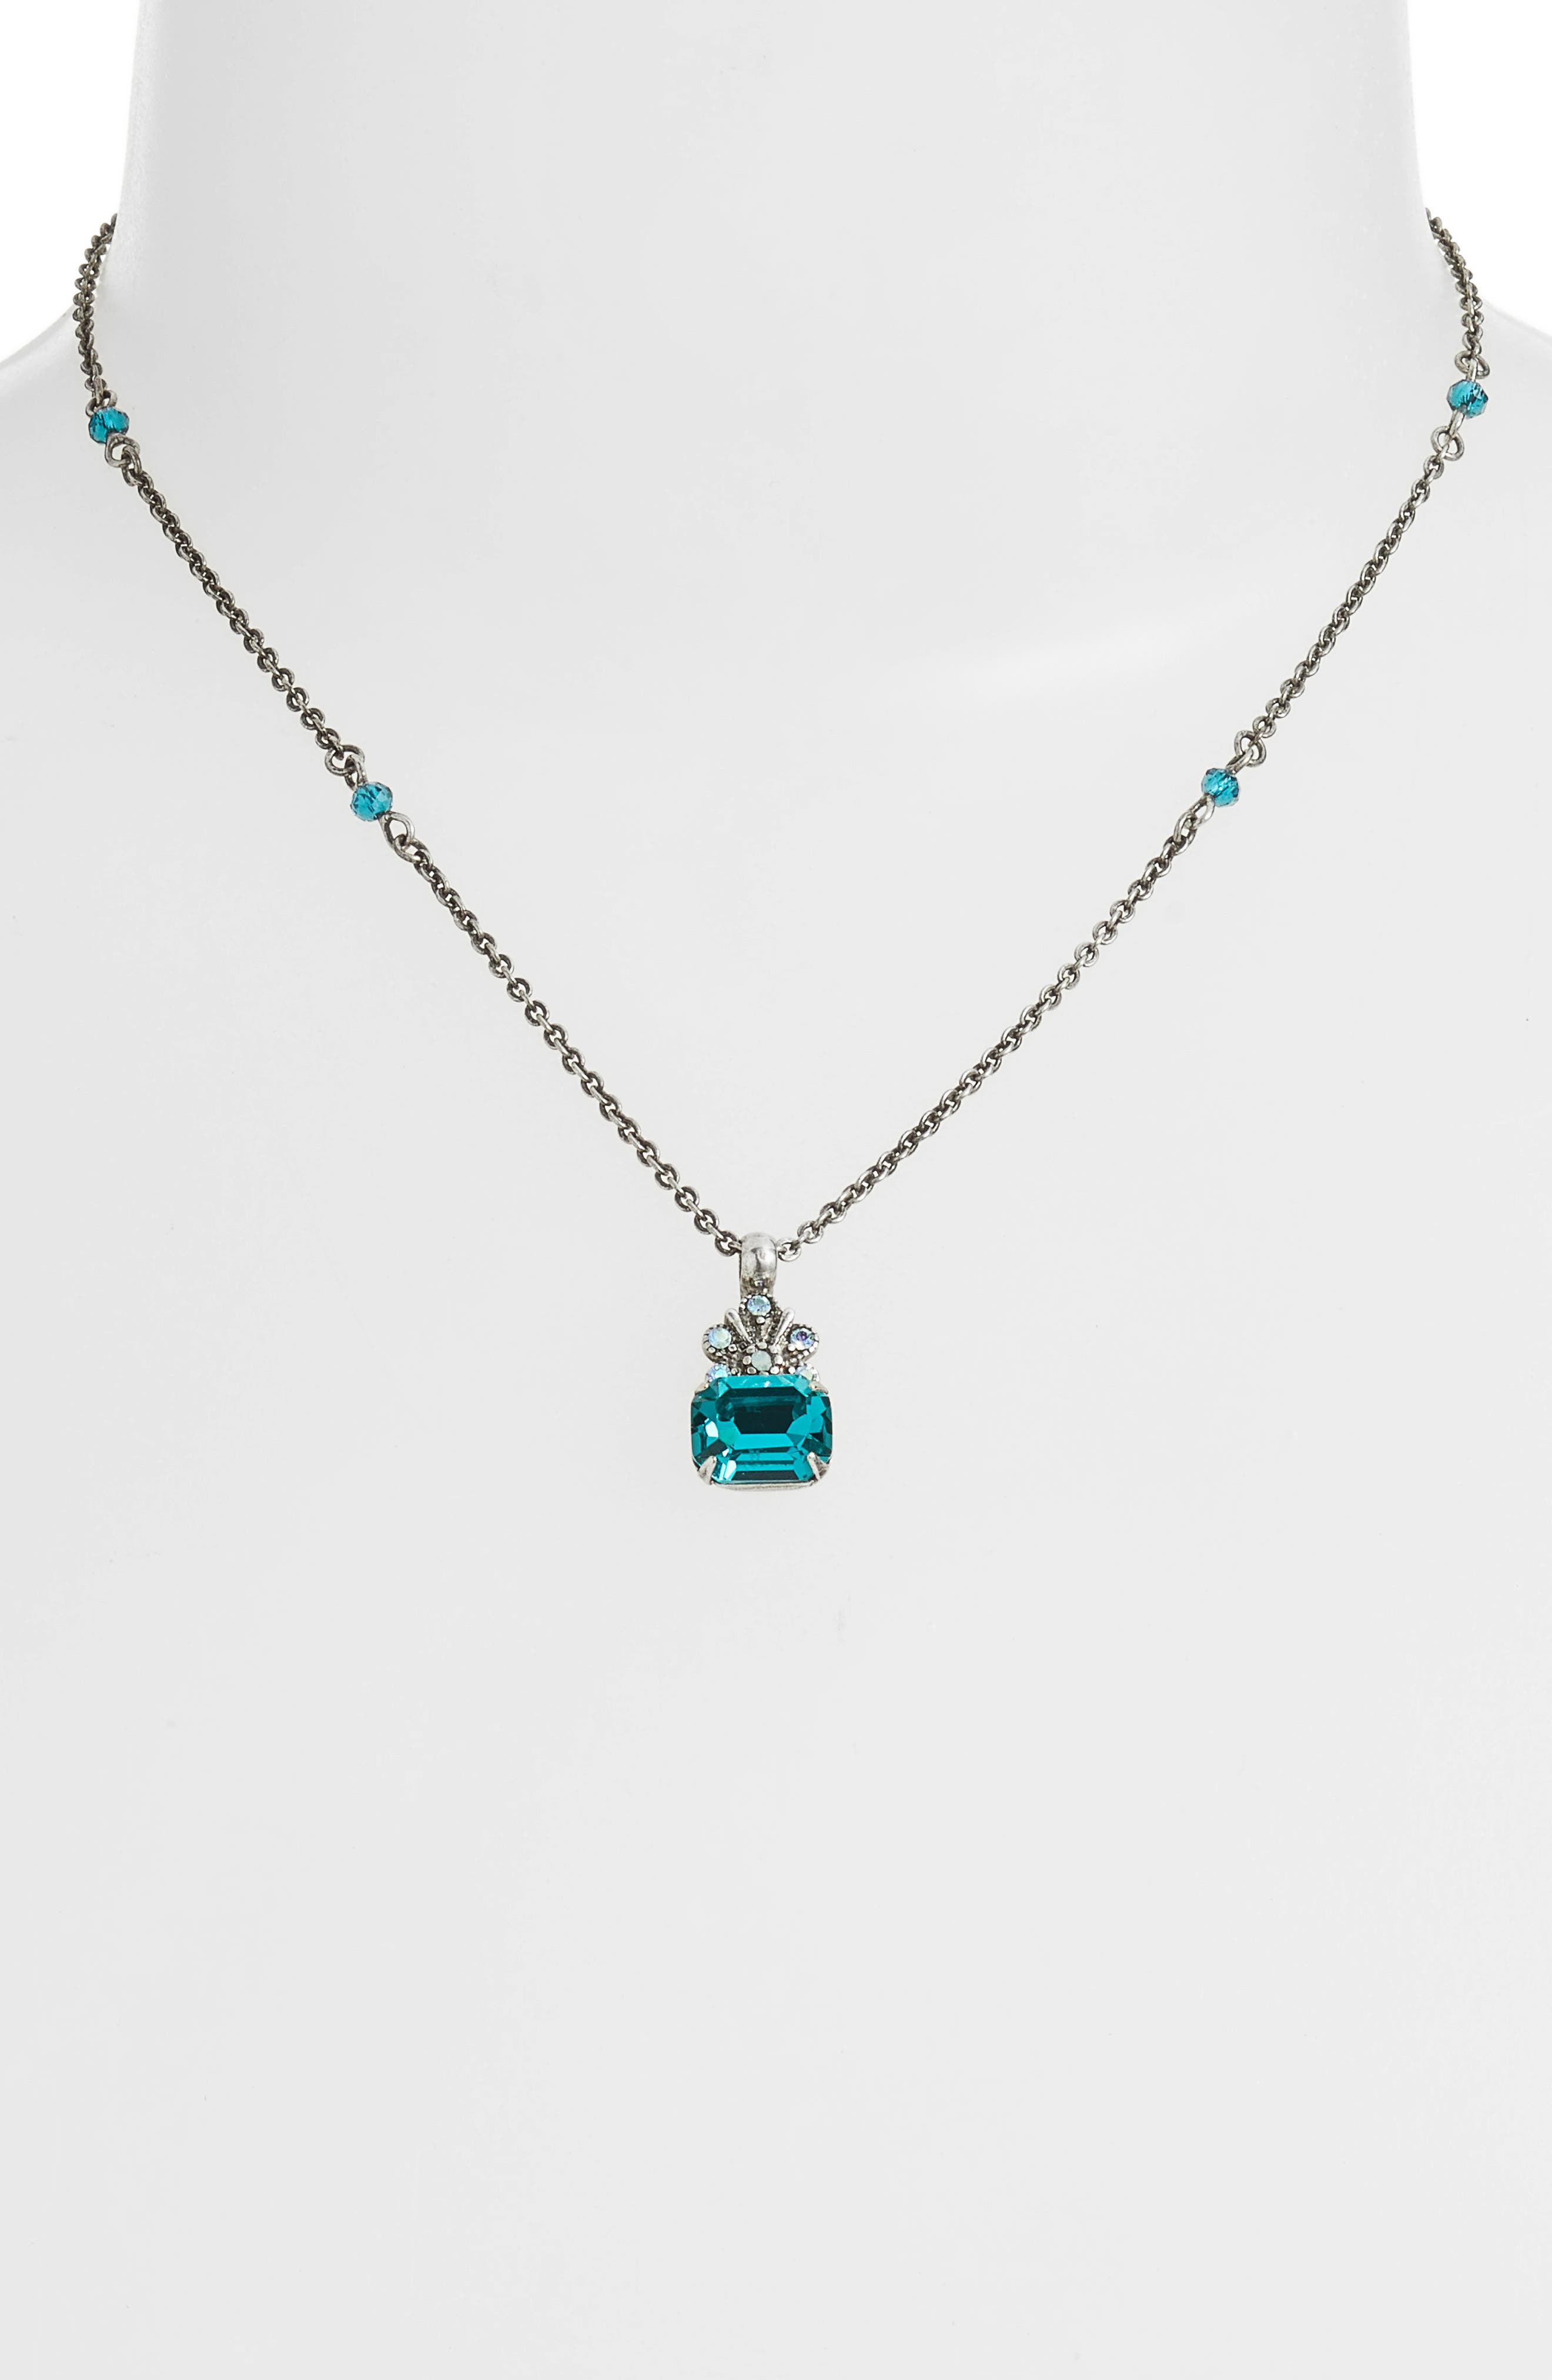 Crowning Glory Crystal Pendant Necklace,                             Alternate thumbnail 2, color,                             BLUE-GREEN